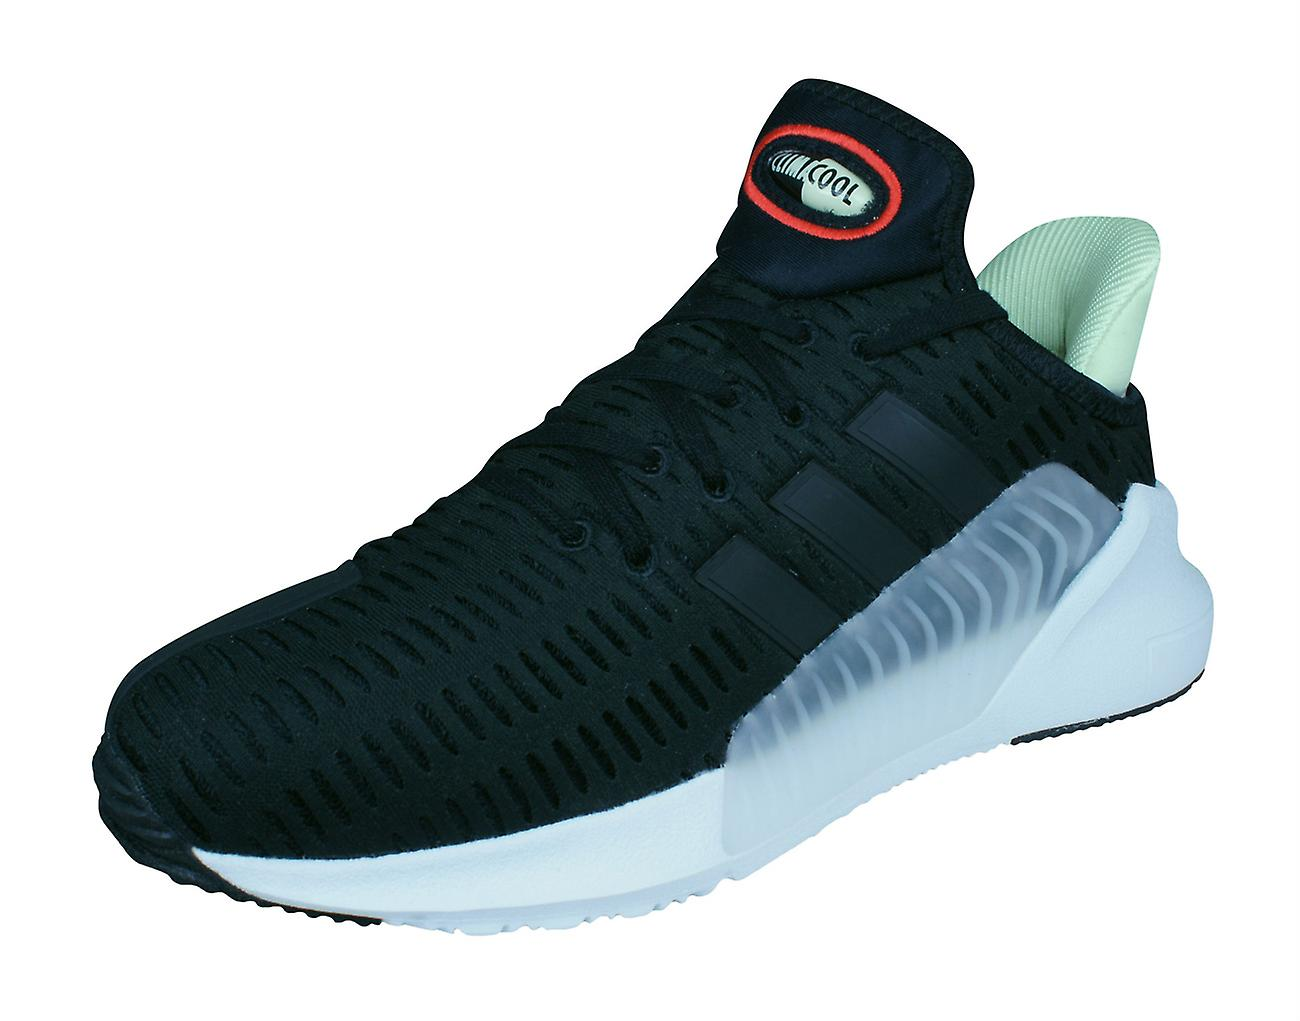 reputable site ce4eb b79f9 adidas Originals Climacool 0217 Womens Trainers  Shoes - Black